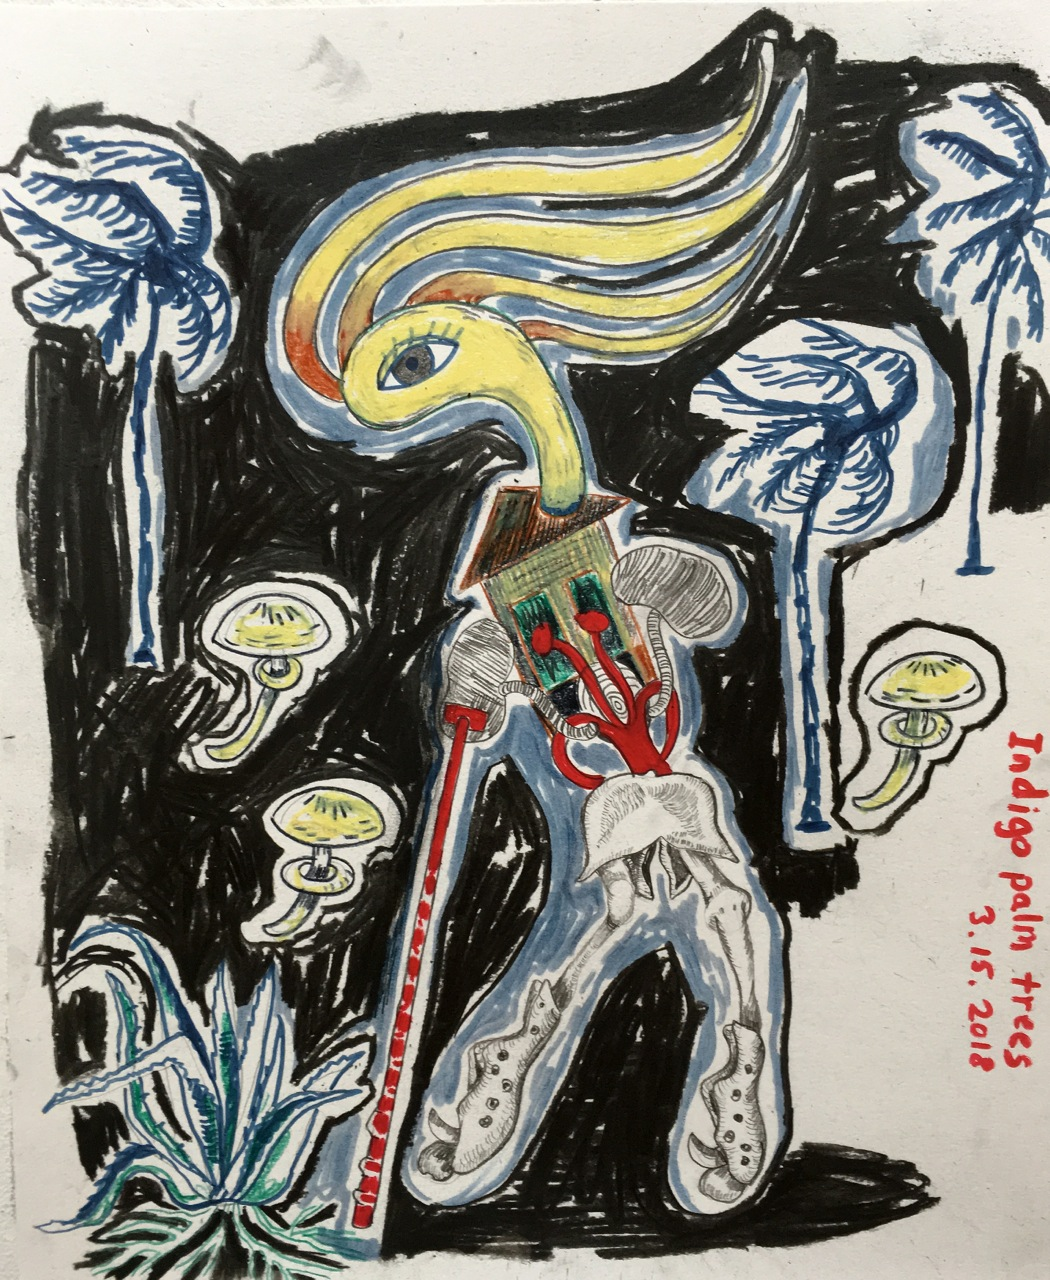 1_SelfPortrait _with_Indigo_Palm_Trees2018,mixedmedia_drawing_11x17.jpg